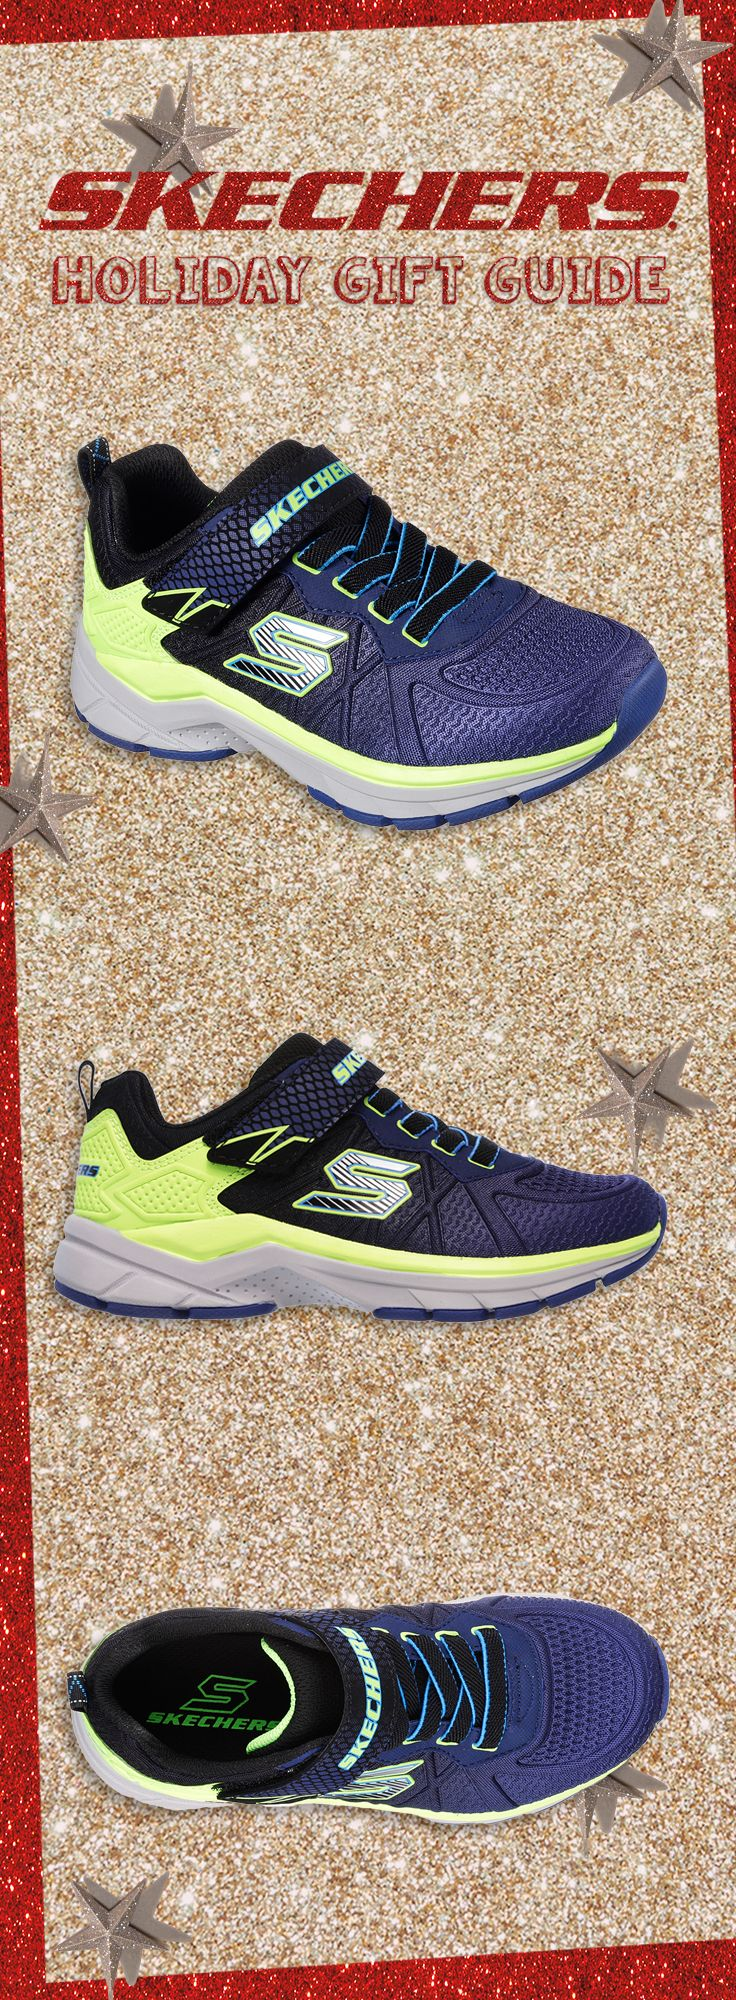 75 Best SKECHERS Holiday Gift Guide images | Skechers